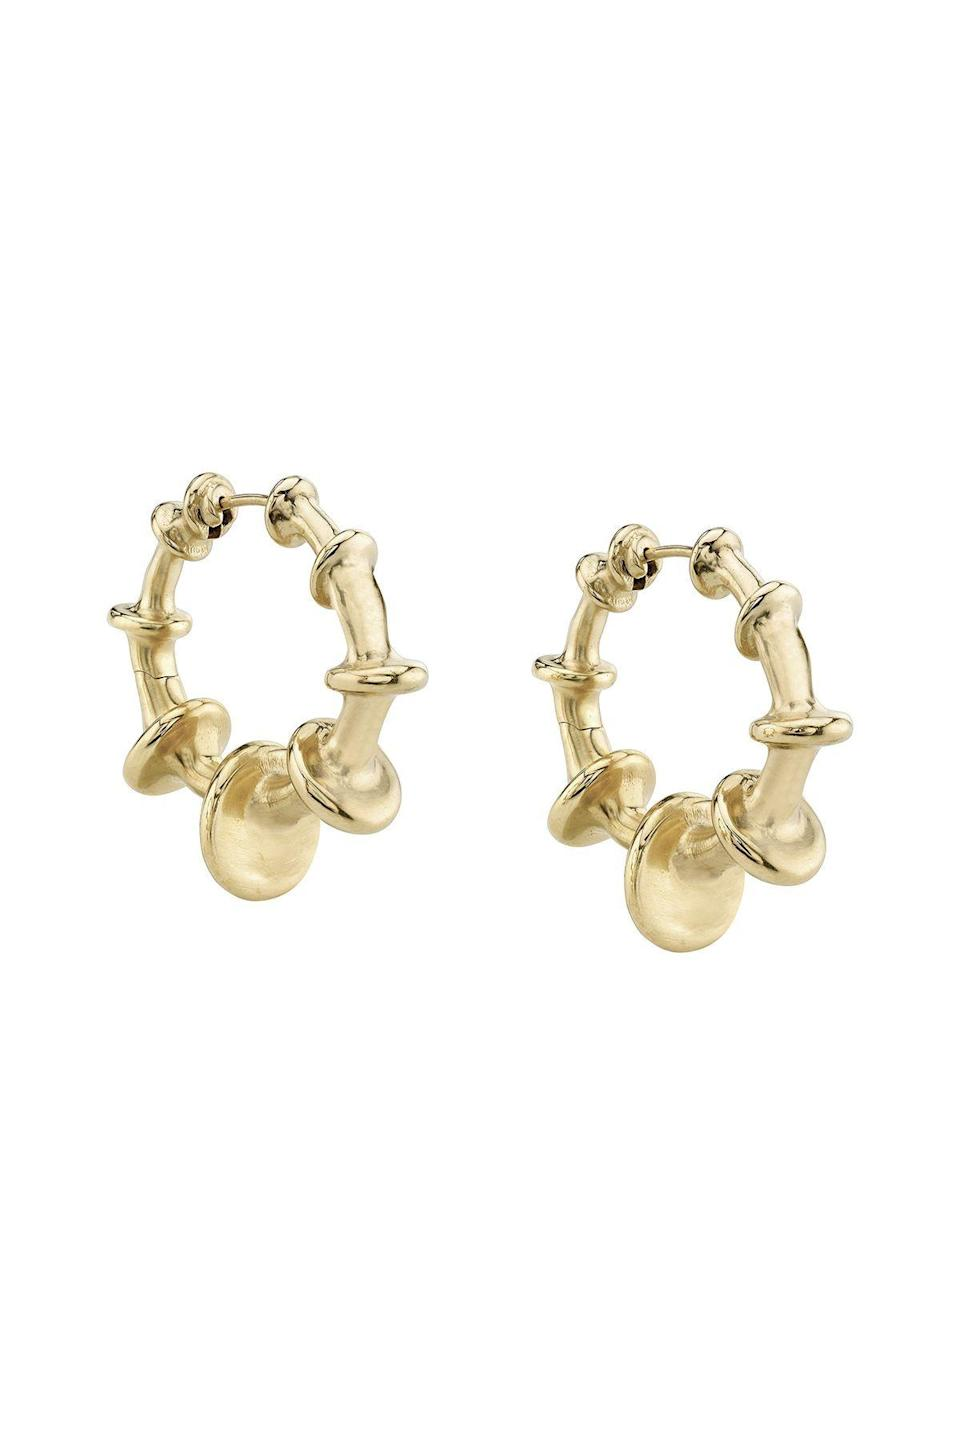 """<p><strong>Vram</strong></p><p>brokenenglishjewelry.com</p><p><strong>$2400.00</strong></p><p><a href=""""https://brokenenglishjewelry.com/products/vm-chrona-hoops-2"""" rel=""""nofollow noopener"""" target=""""_blank"""" data-ylk=""""slk:Shop Now"""" class=""""link rapid-noclick-resp"""">Shop Now</a></p><p>Gold hoops do not have to be boring! Refresh your circulation of pieces with an architectural pair from Vram.</p>"""